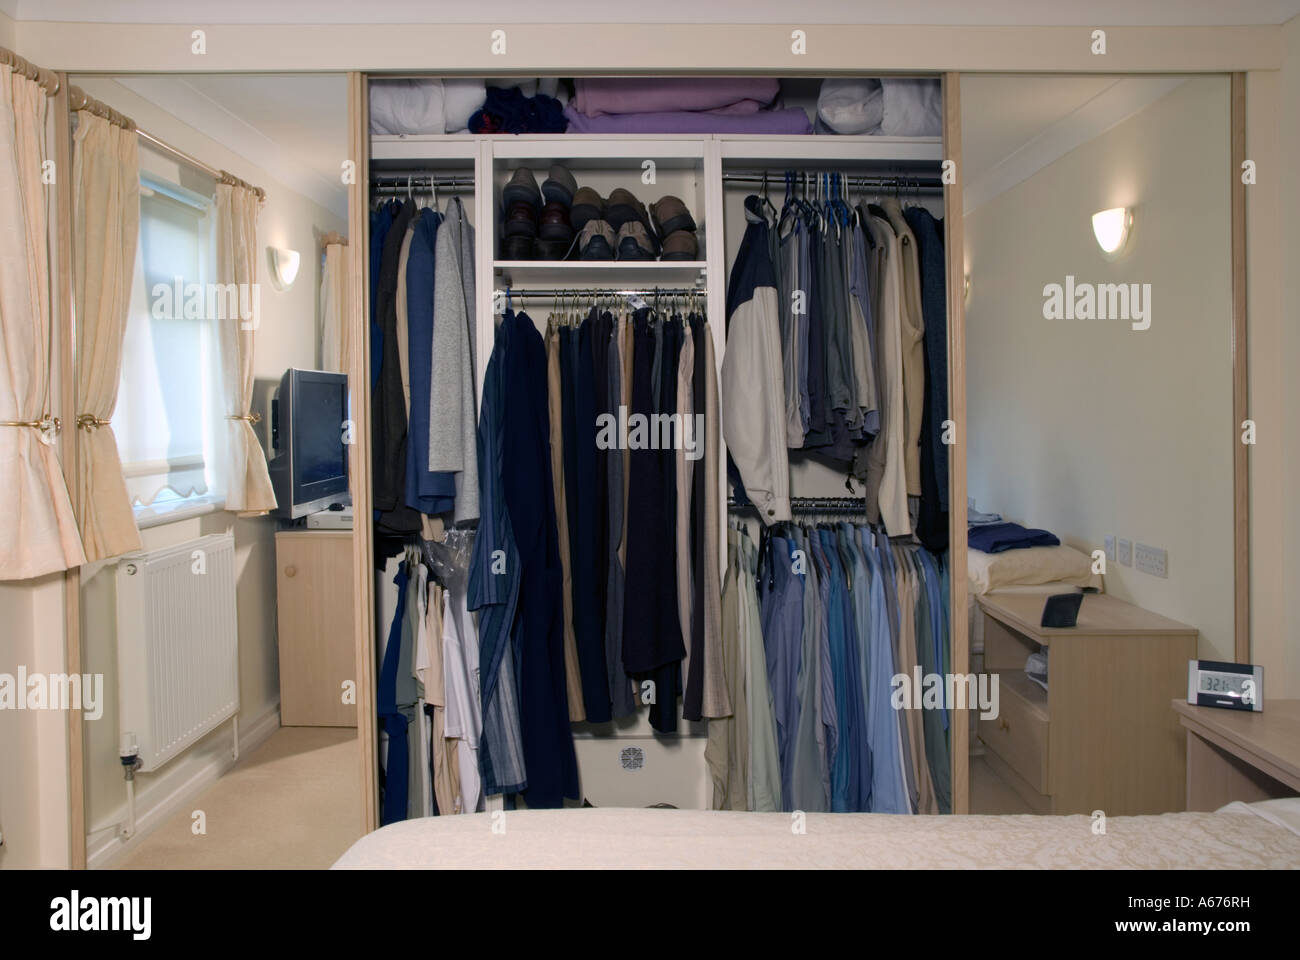 Shared Built In Bedroom Wardrobe With Mirror Sliding Doors Open To Show Garments On Hanging Rail Reflections Of Room Interior